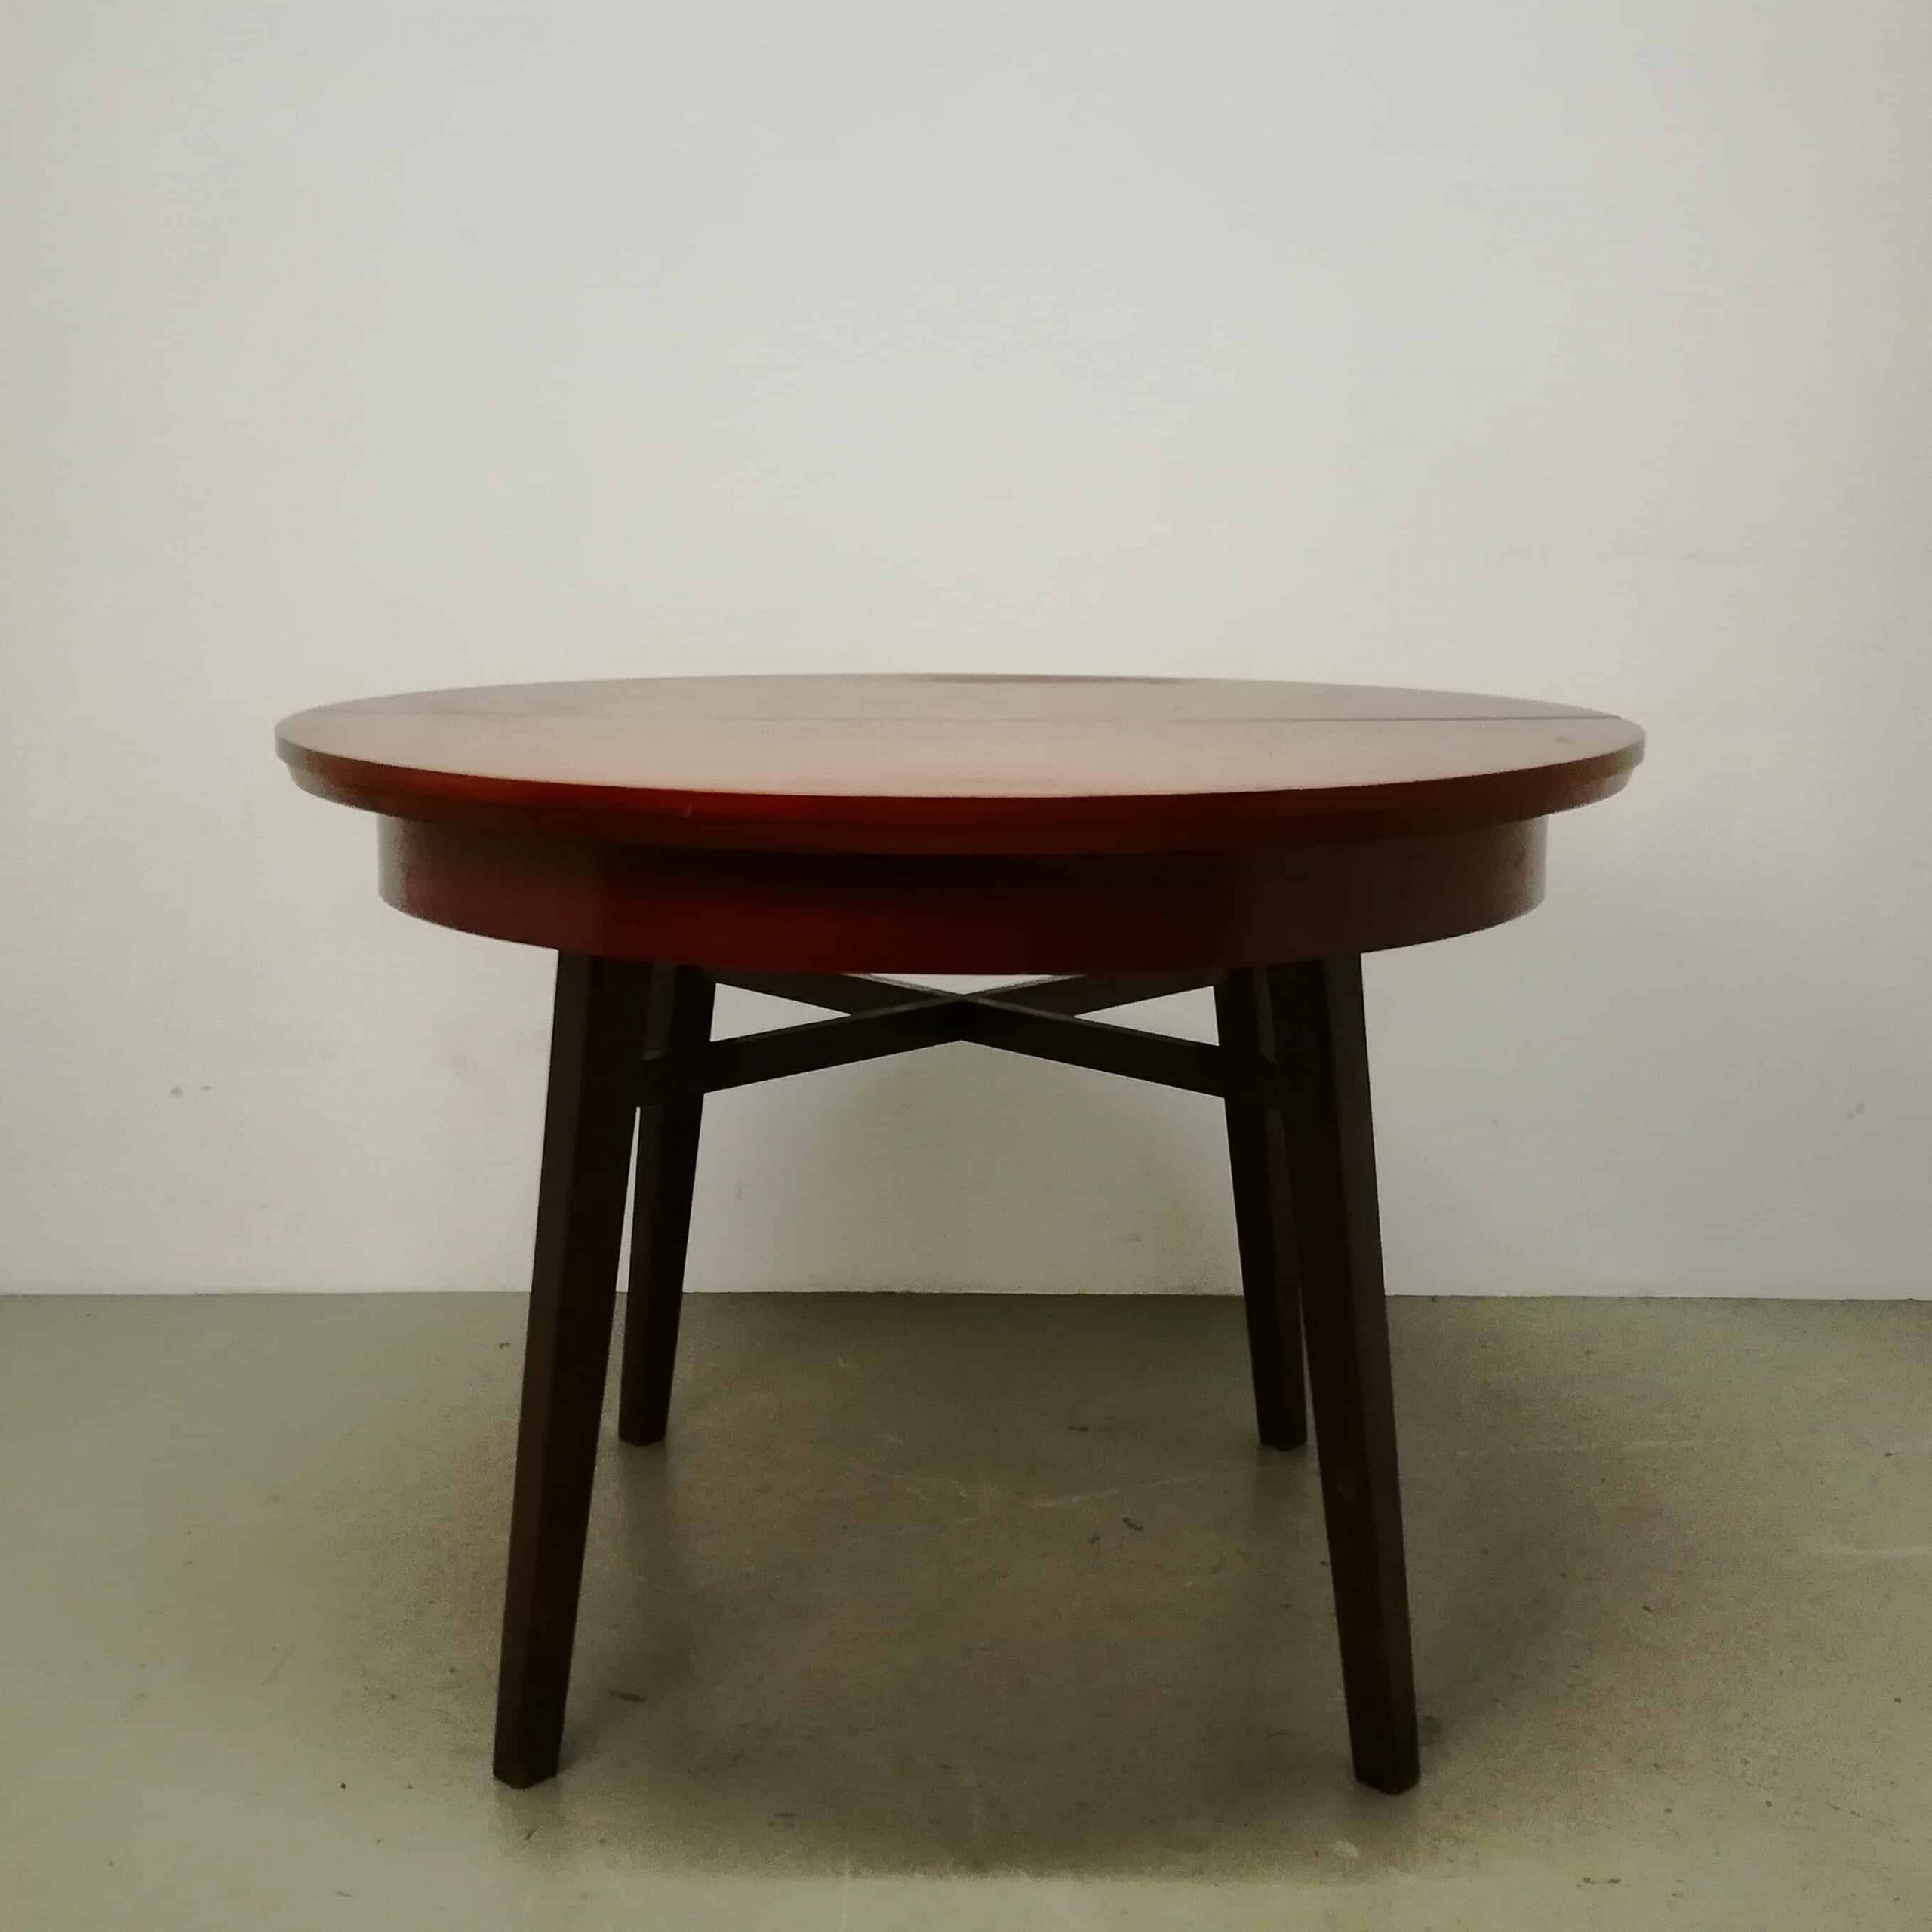 table-dining-room-round-extendable-extendable-cross-frame-dutch-teak-wood-dark-brown-red